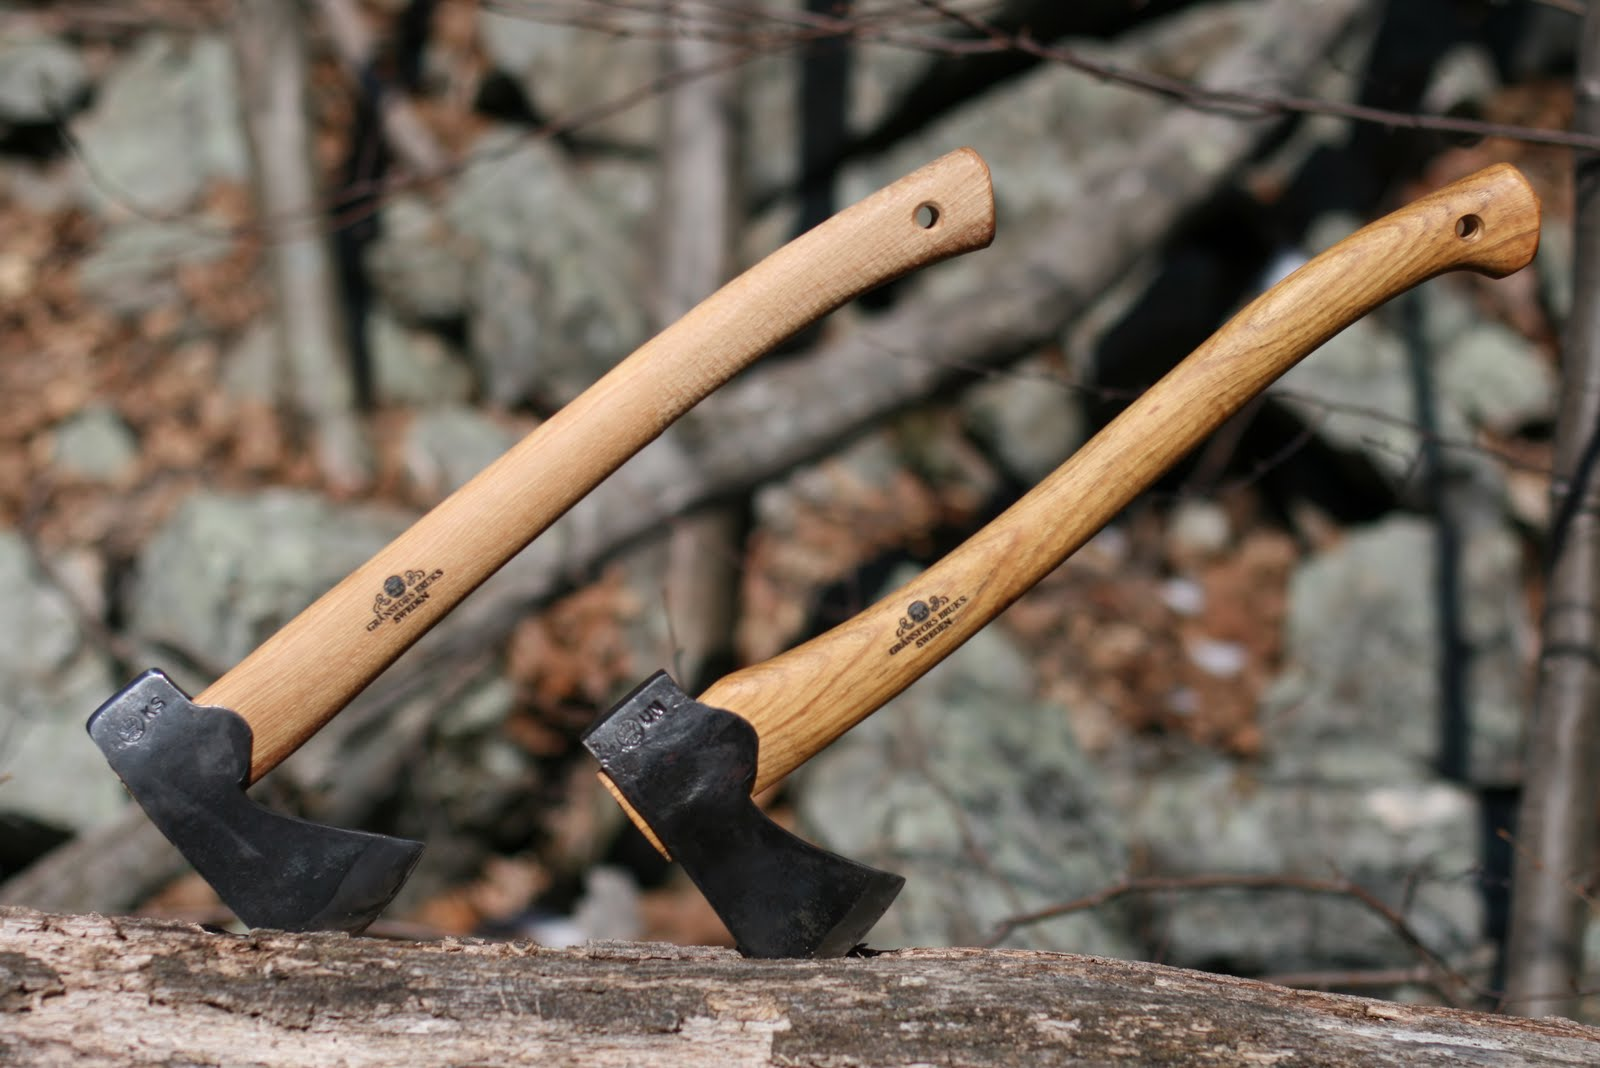 The Handle Of Hunters Axe A Little Shorter Than That Small Forest It Also Has Completely Different Shape While